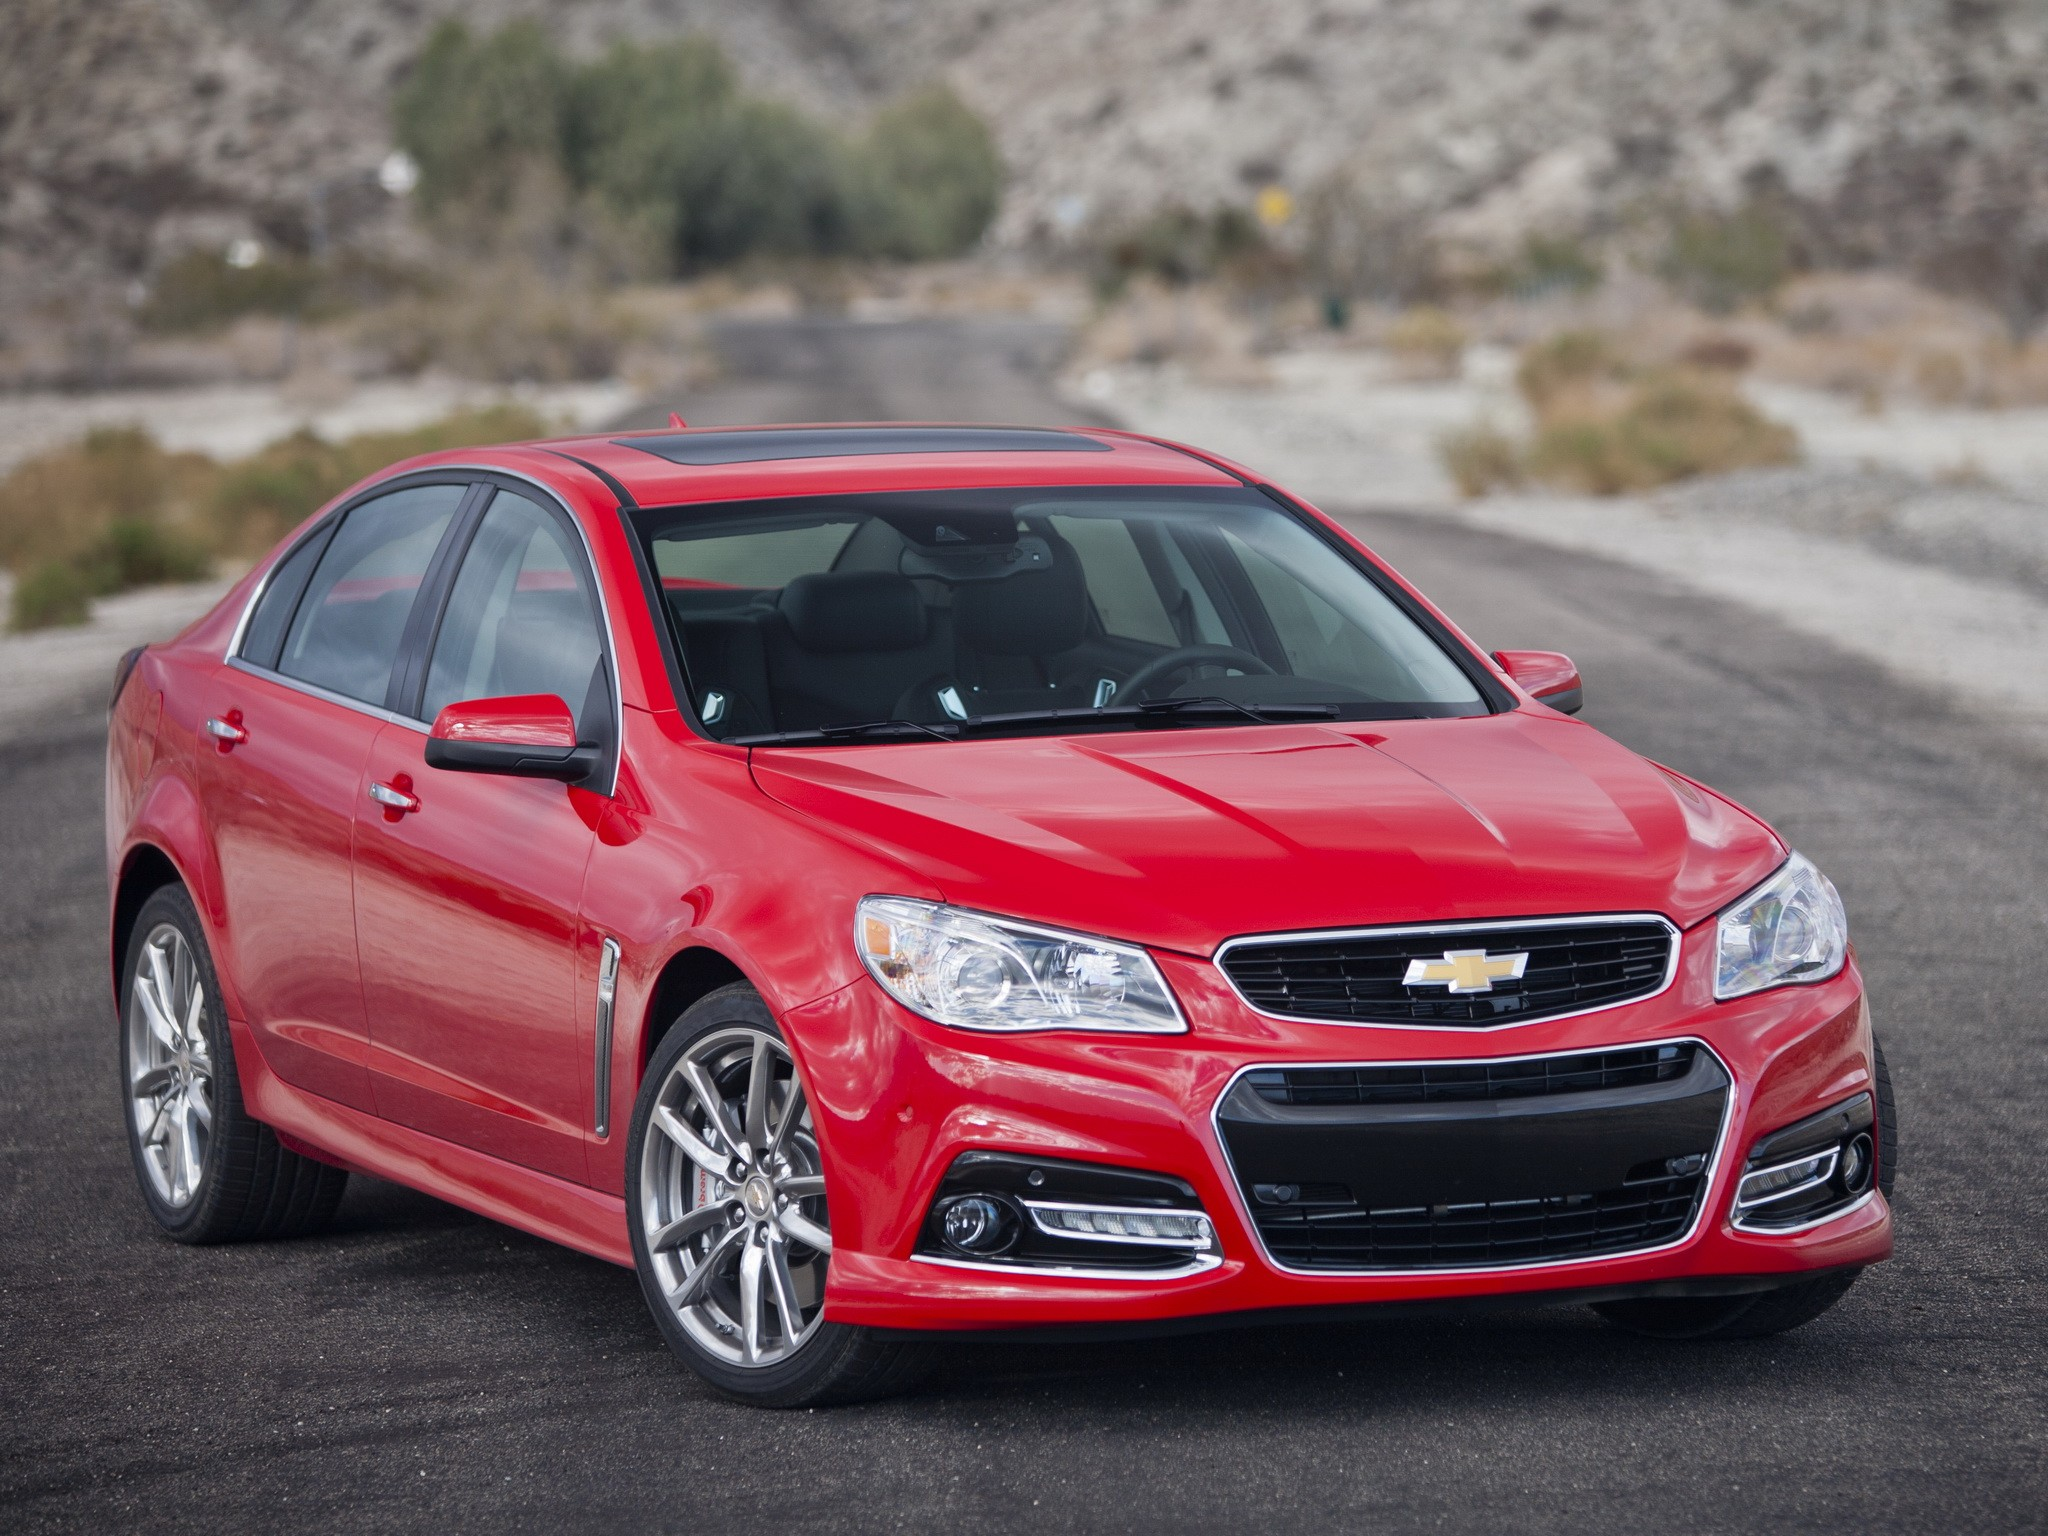 chevrolet ss specs photos 2013 2014 2015 2016 2017 2018 autoevolution. Black Bedroom Furniture Sets. Home Design Ideas